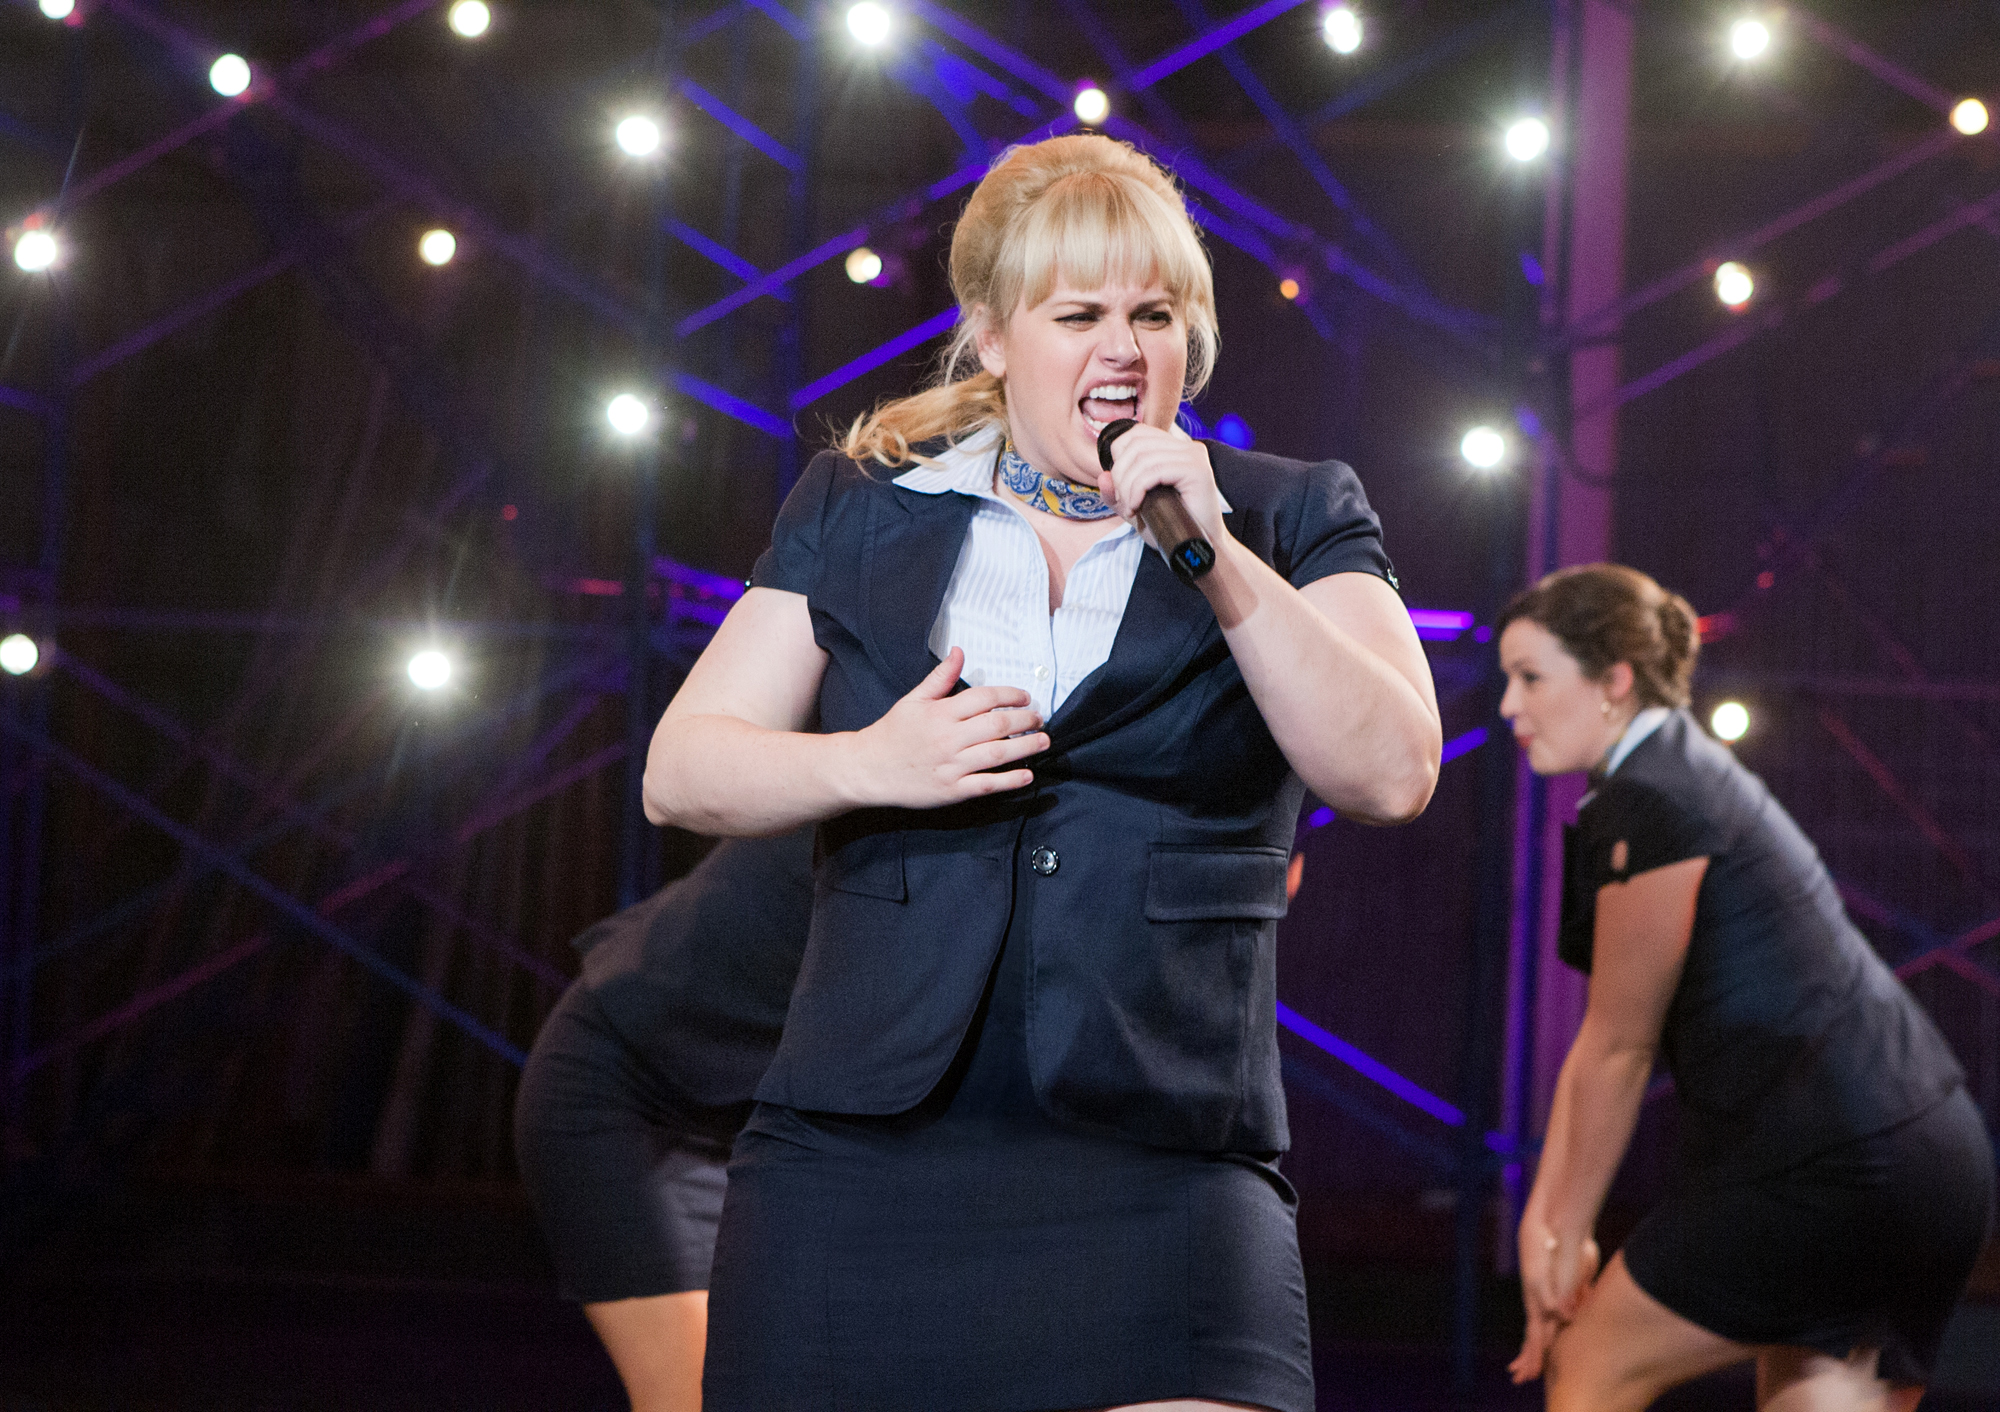 Movie Review: Pitch Perfect (2012)